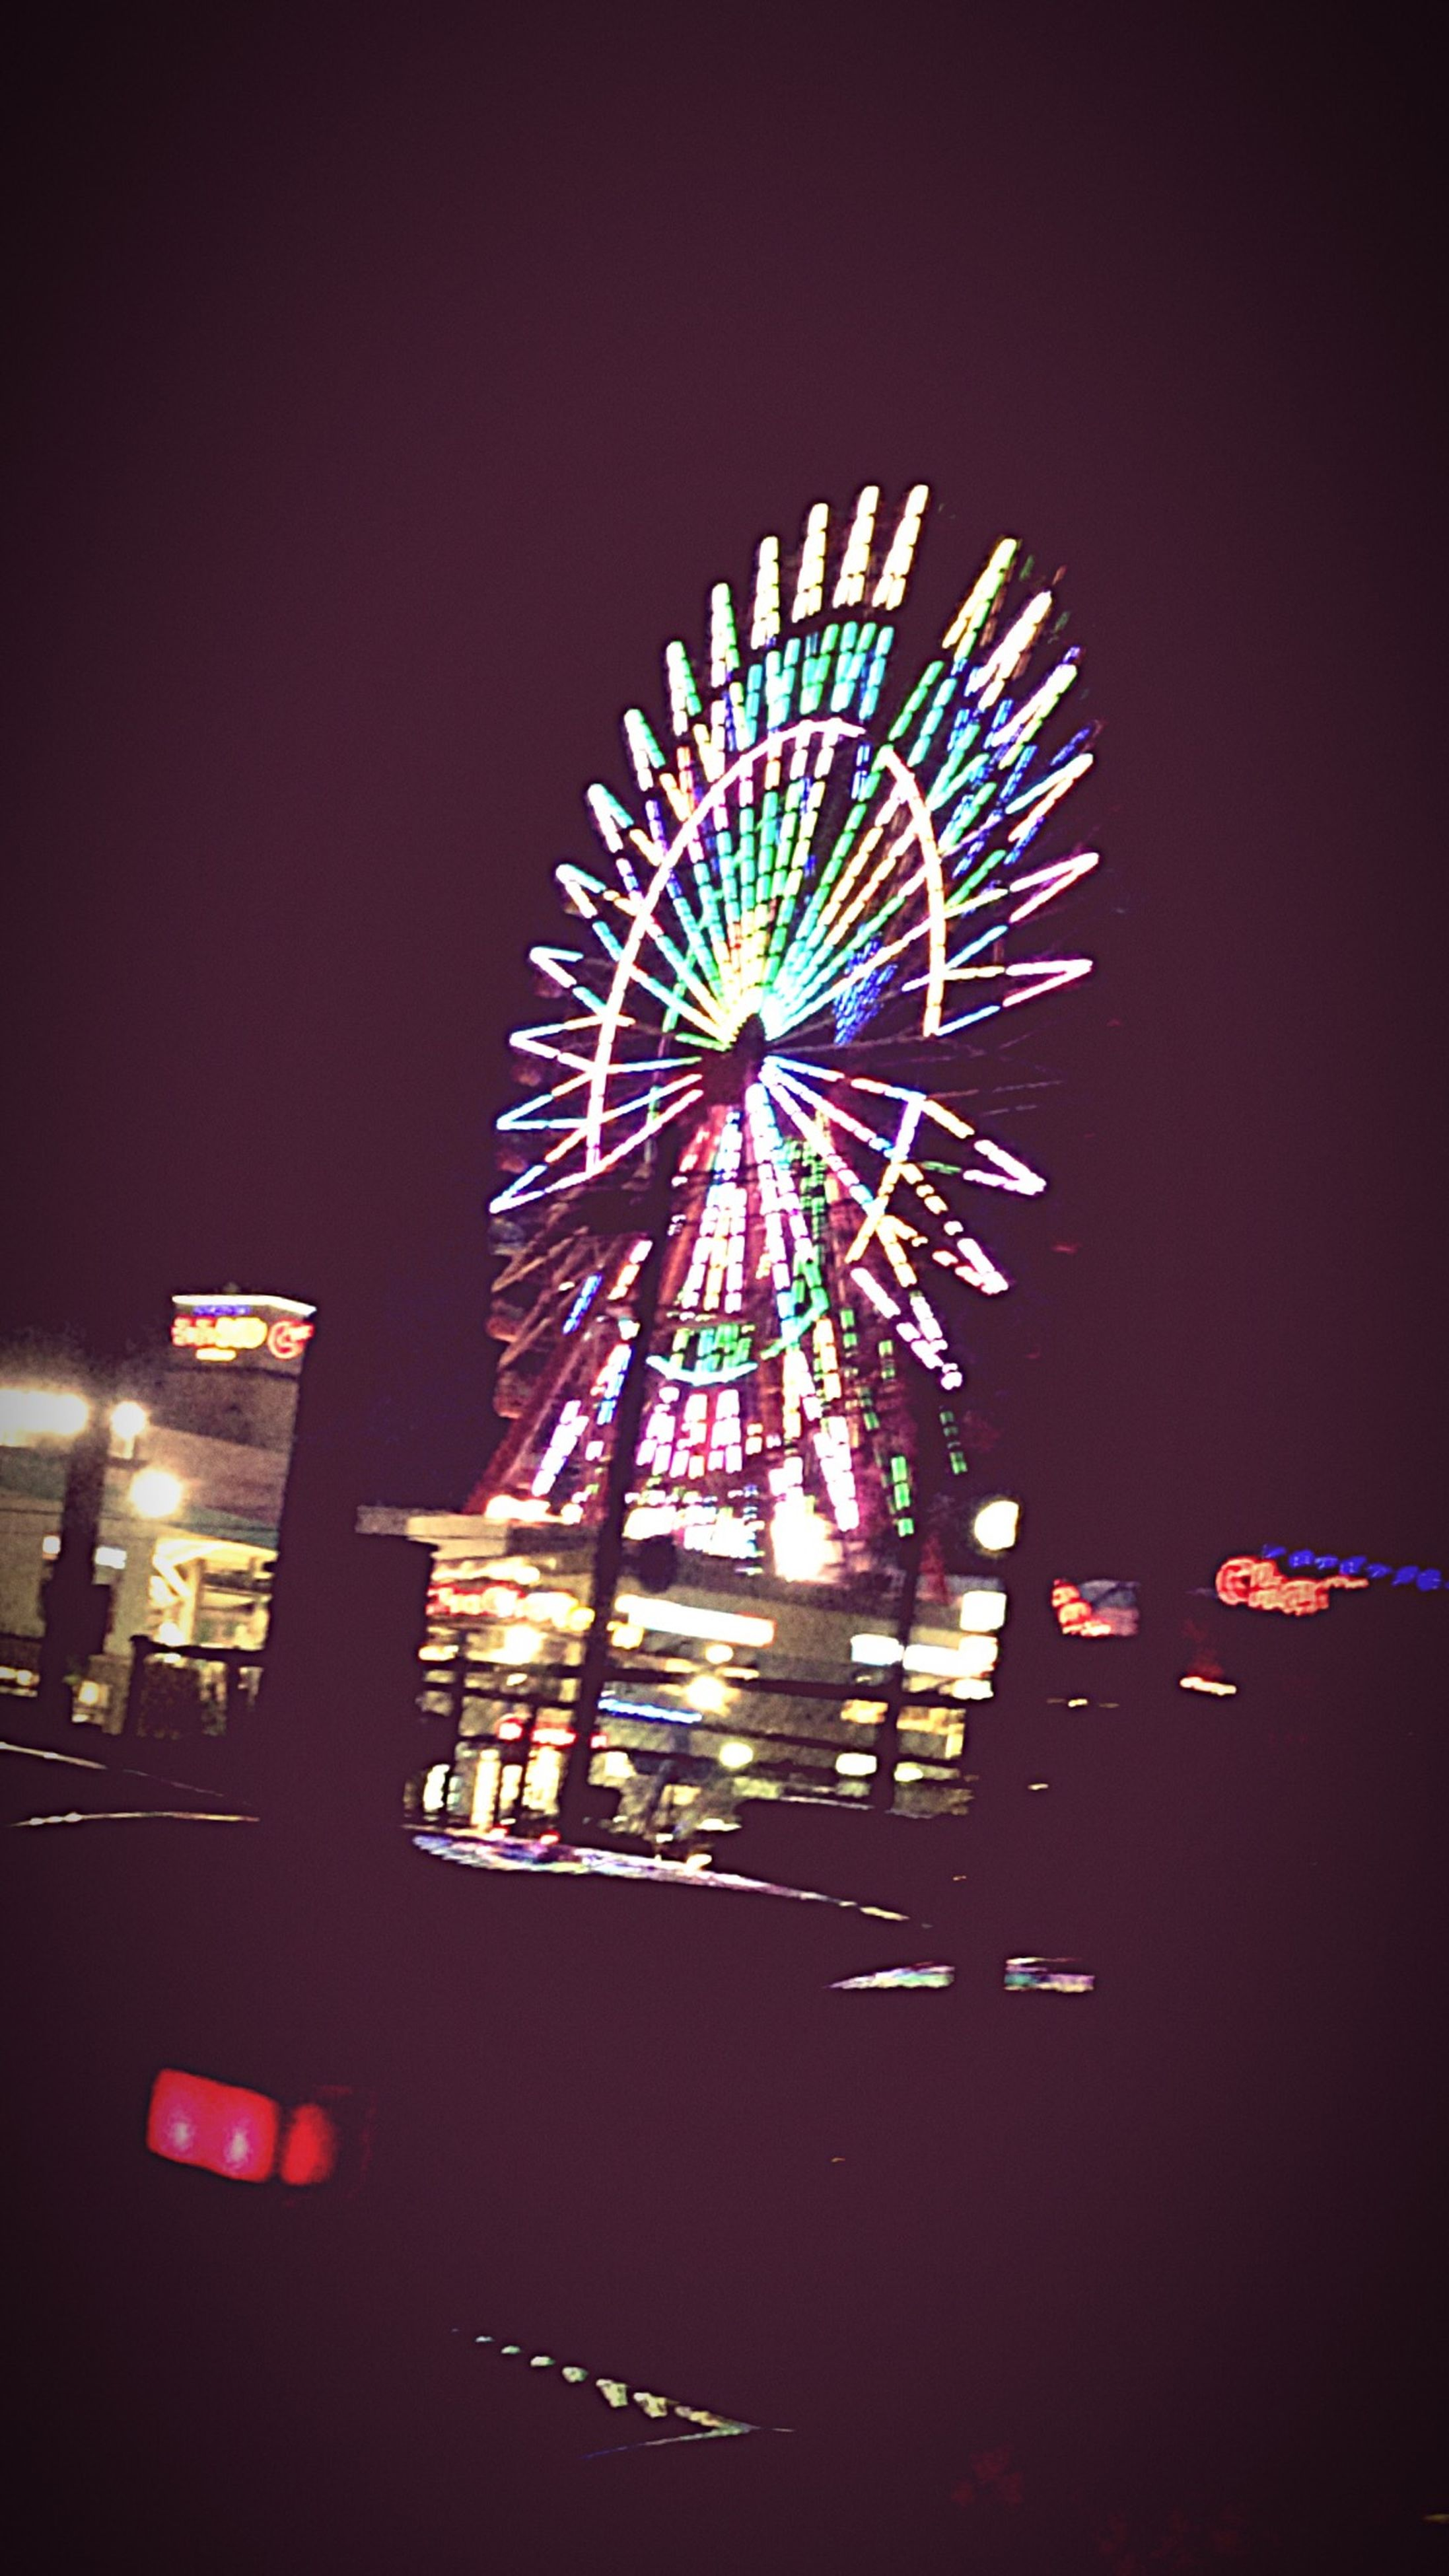 illuminated, night, arts culture and entertainment, low angle view, multi colored, ferris wheel, amusement park, amusement park ride, celebration, glowing, architecture, built structure, sky, lighting equipment, long exposure, motion, firework display, building exterior, clear sky, decoration